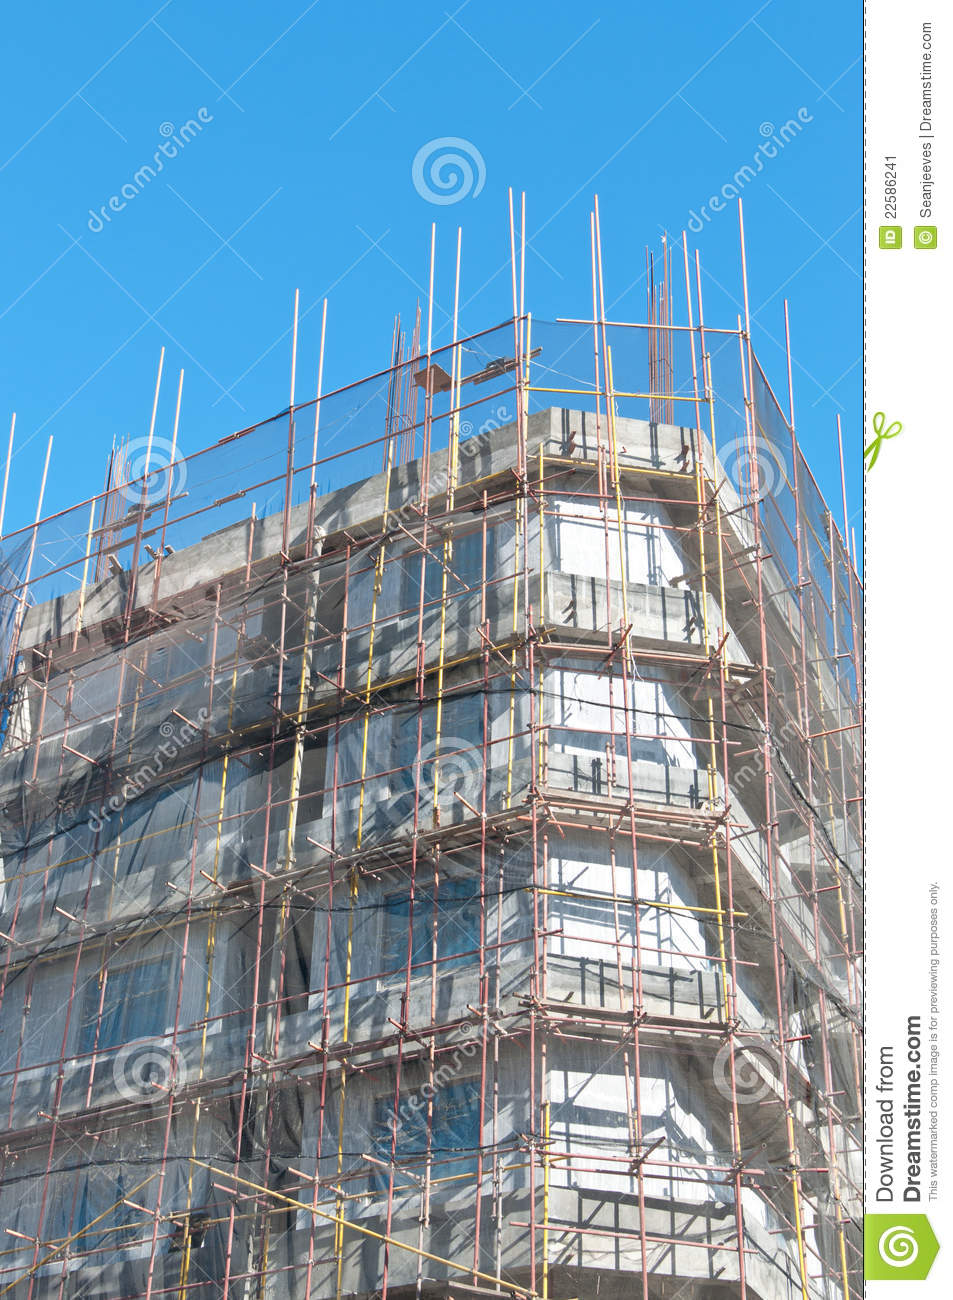 Building Under Construction Stock Image - Image: 22586241